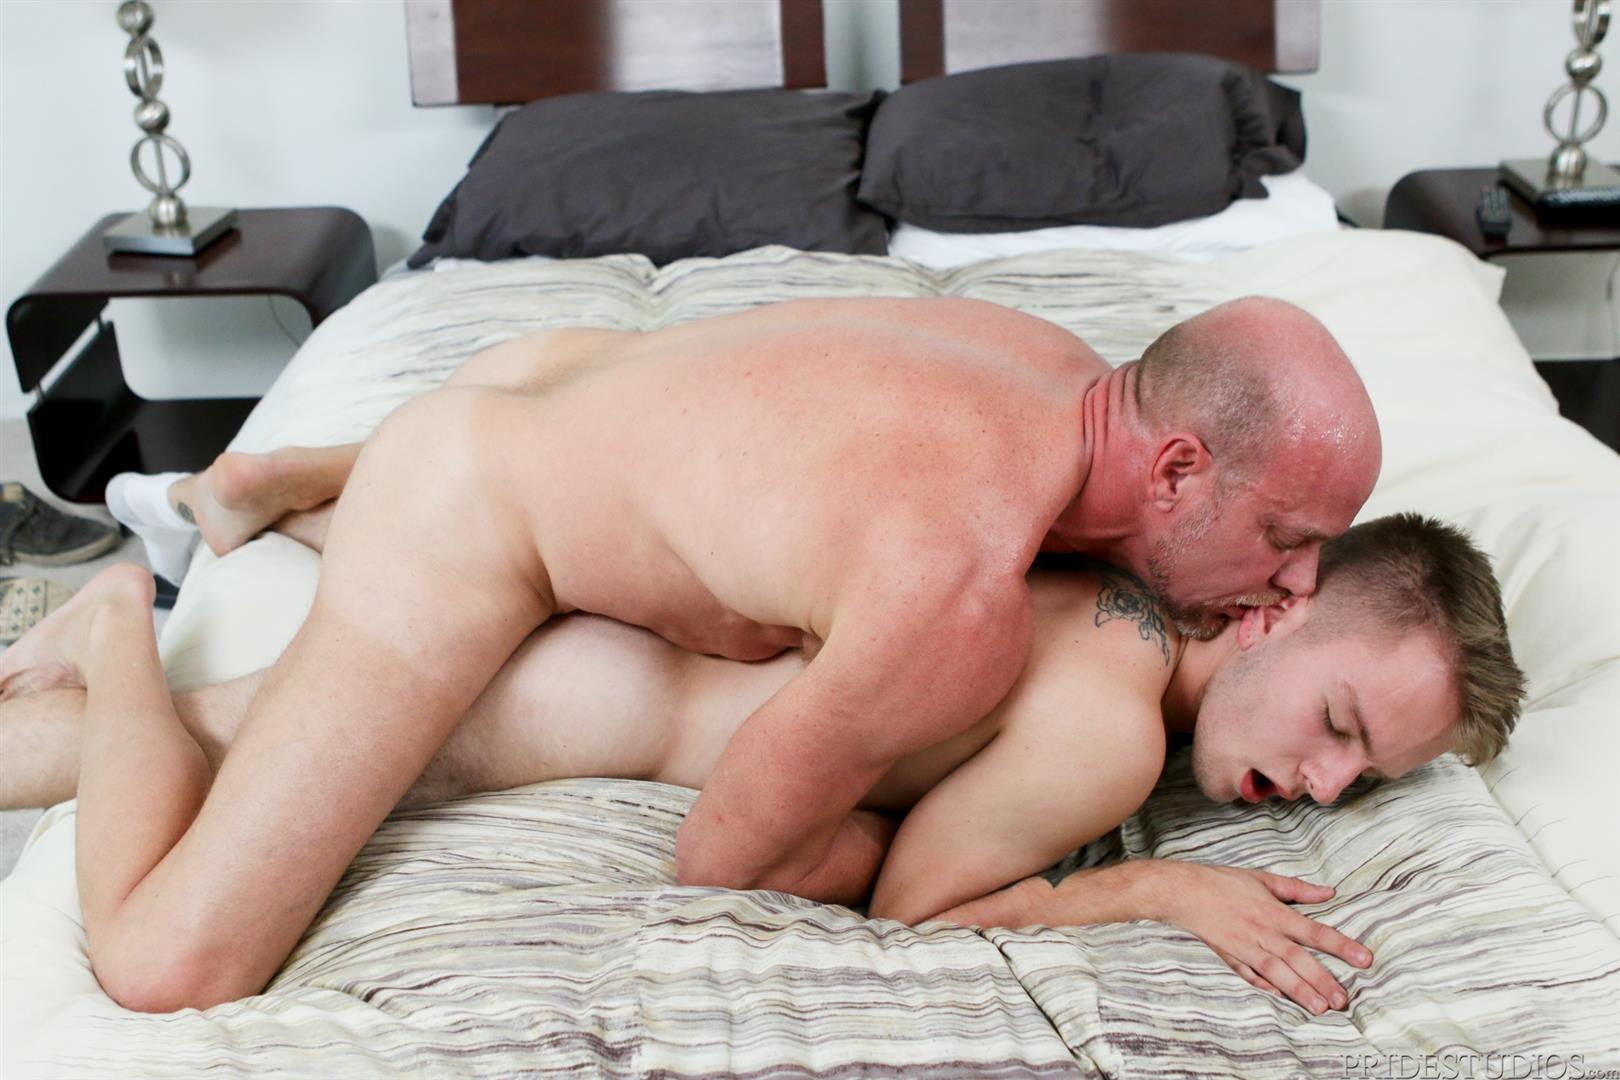 Dylan-Lucas-Parker-Matson-and-Timothy-Drake-Stepdad-Fucking-Stepson-Daddy-Dick-11 Getting Fucked By My Stepdads Big Fat Cock